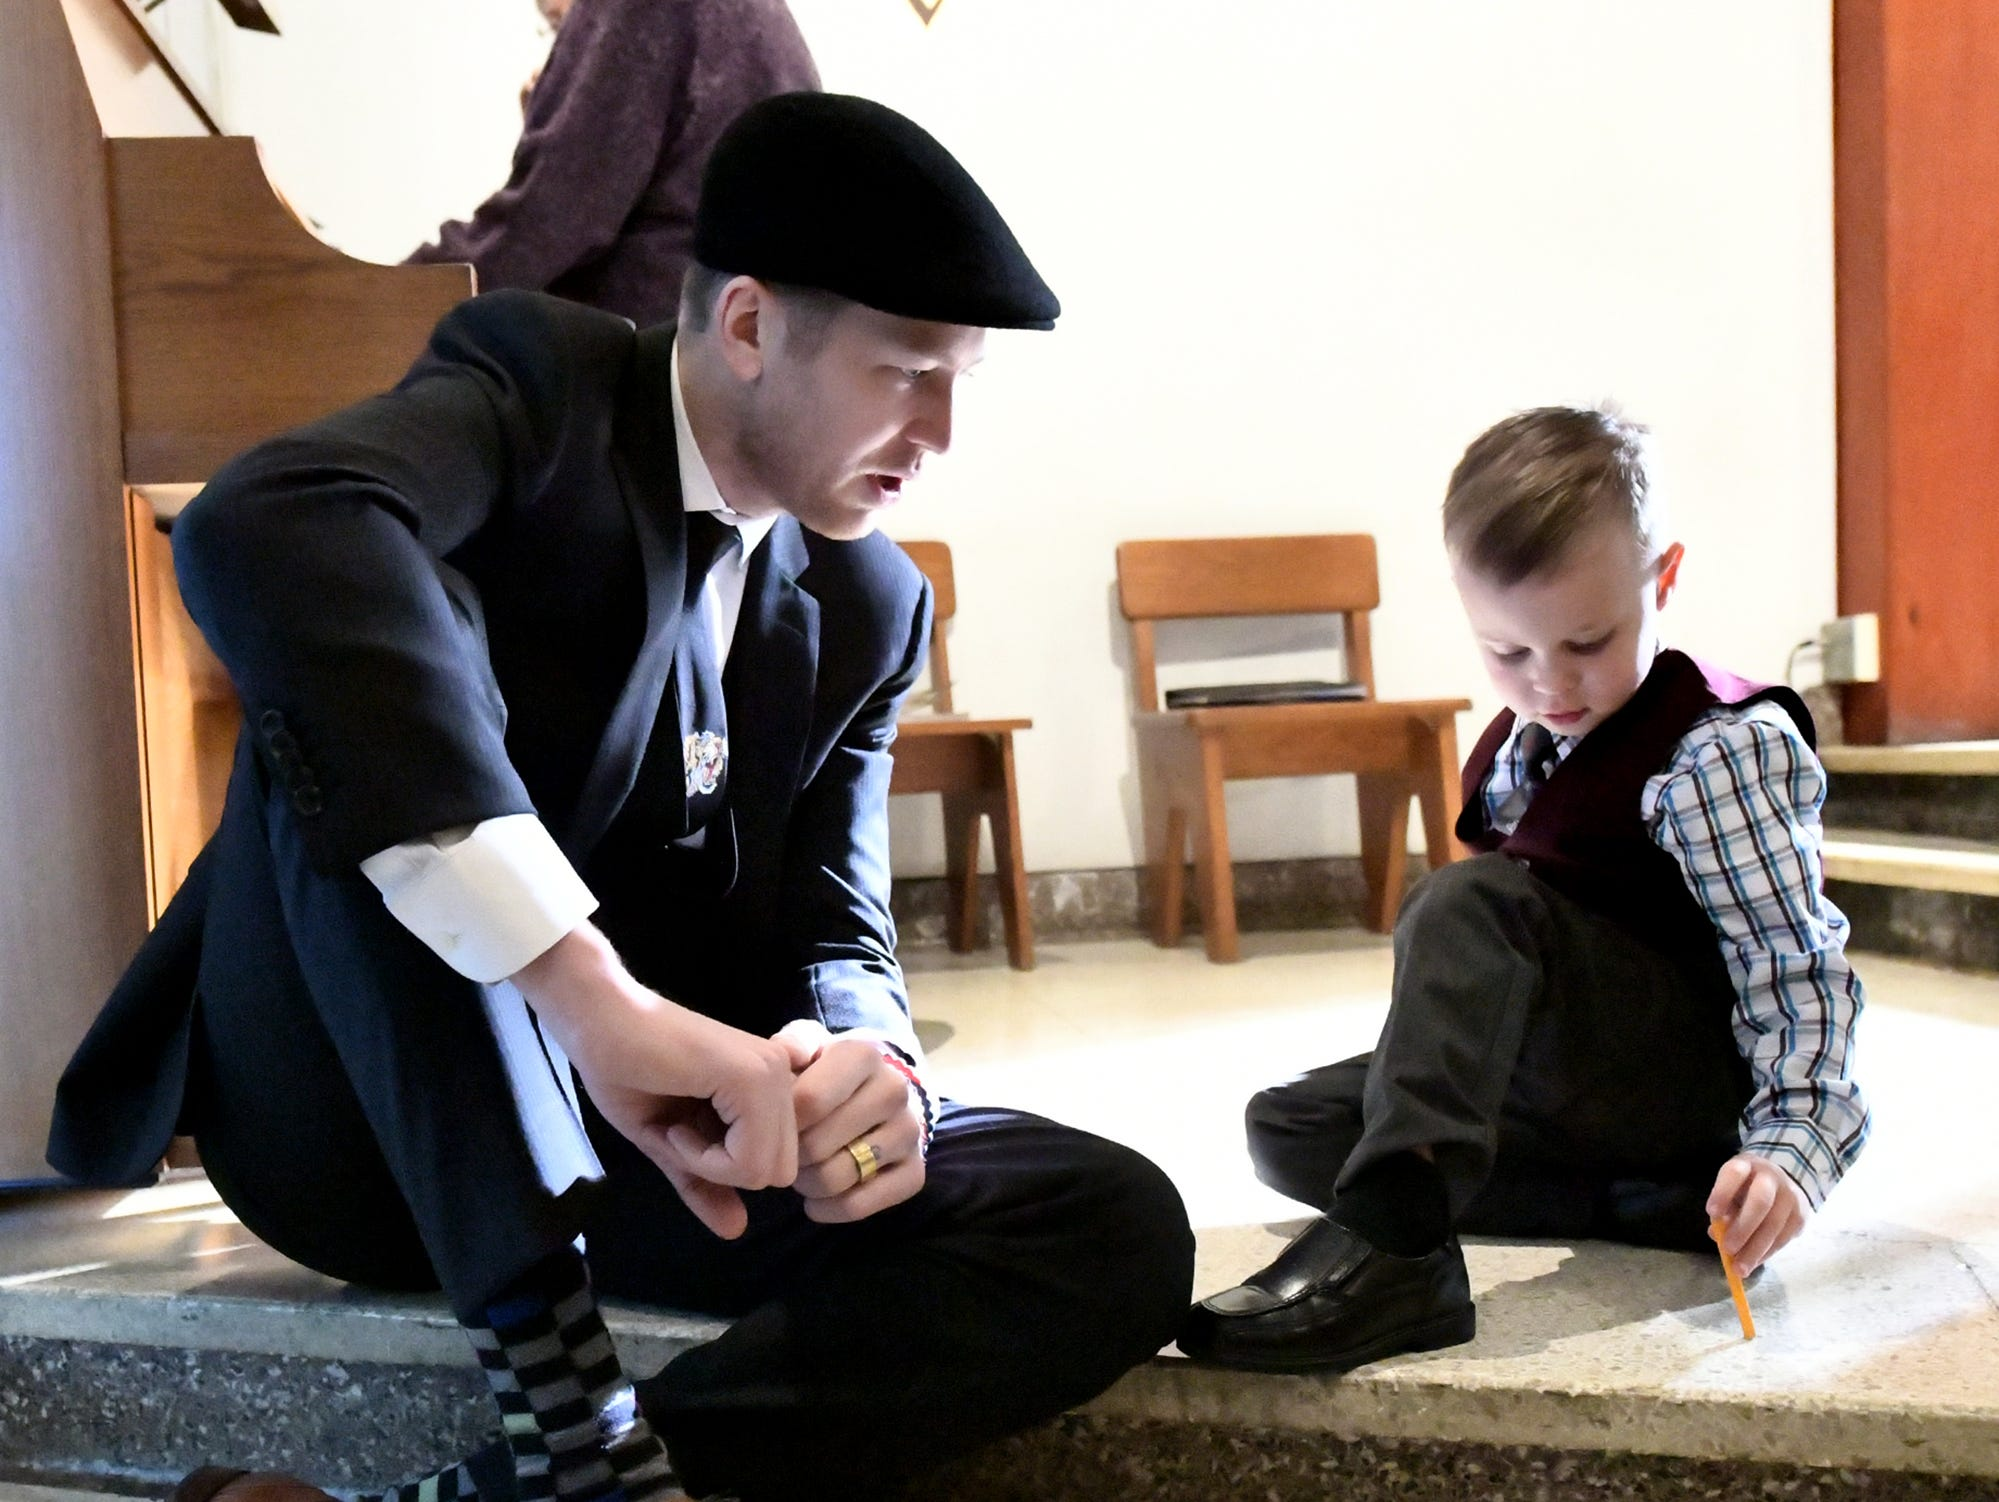 "Brett Leonhardt of Washington, D.C. talks with his cousin Tallen Stevens, 4, of Mount Airy, Md., before a service for Doug Knight at St. Joseph's Catholic Church in Dallastown Friday, Jan. 11, 2019. Leonhardt is a brother-in-law of Knight, 46, who died Jan. 4. He was ""York City's cheerleader"" according to his obituary. Bill Kalina photo"